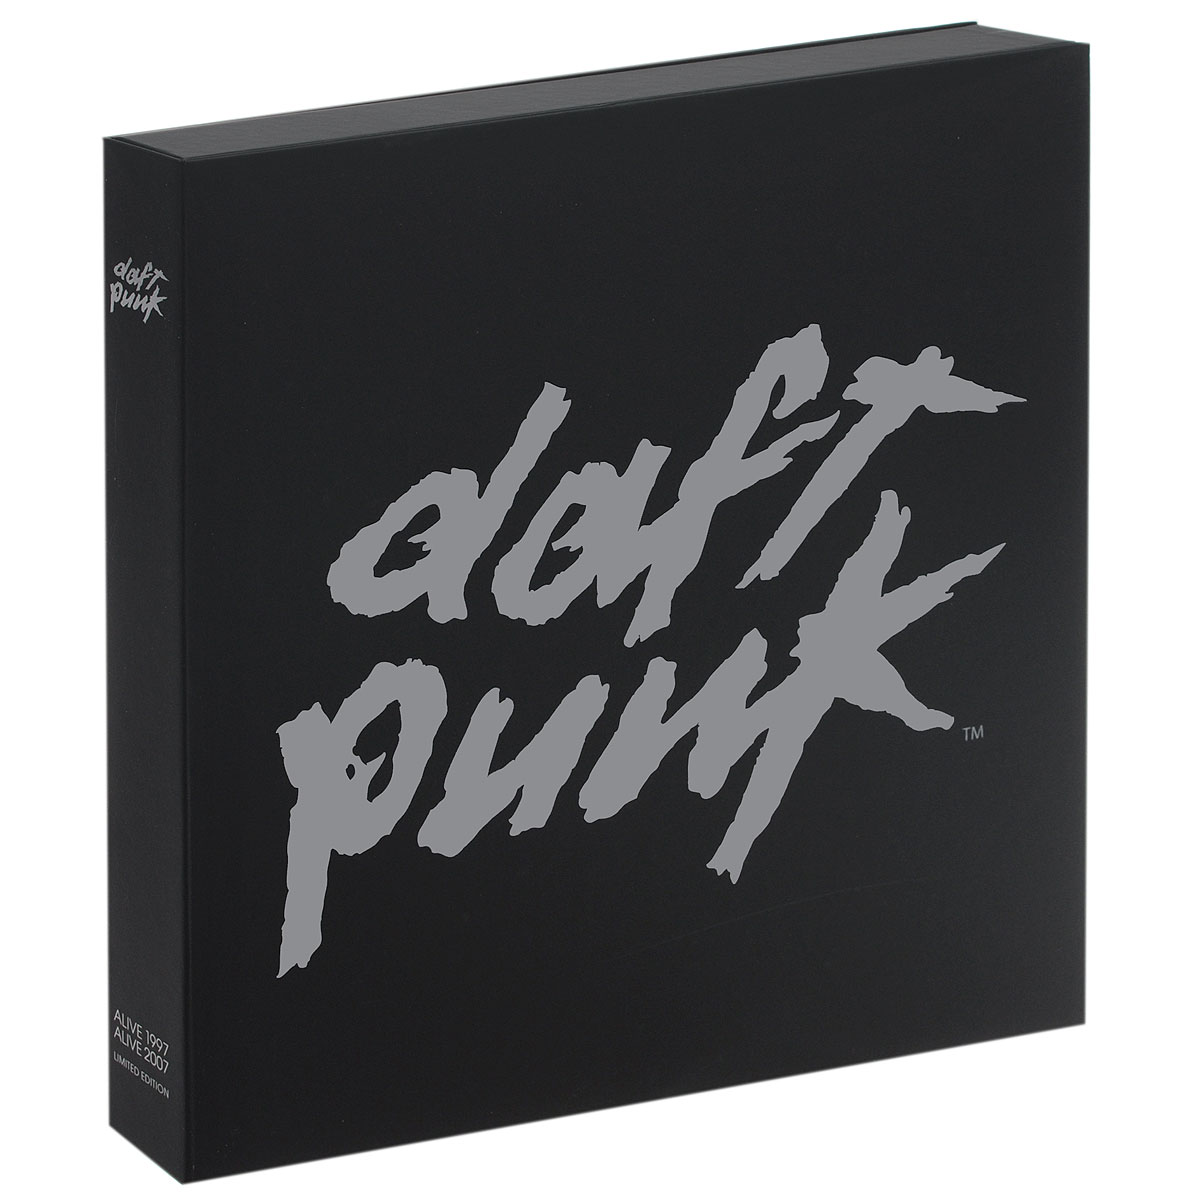 Daft Punk Daft Punk. Daft Punk. Limited Edition (4 LP) new mf8 eitan s star icosaix radiolarian puzzle magic cube black and primary limited edition very challenging welcome to buy